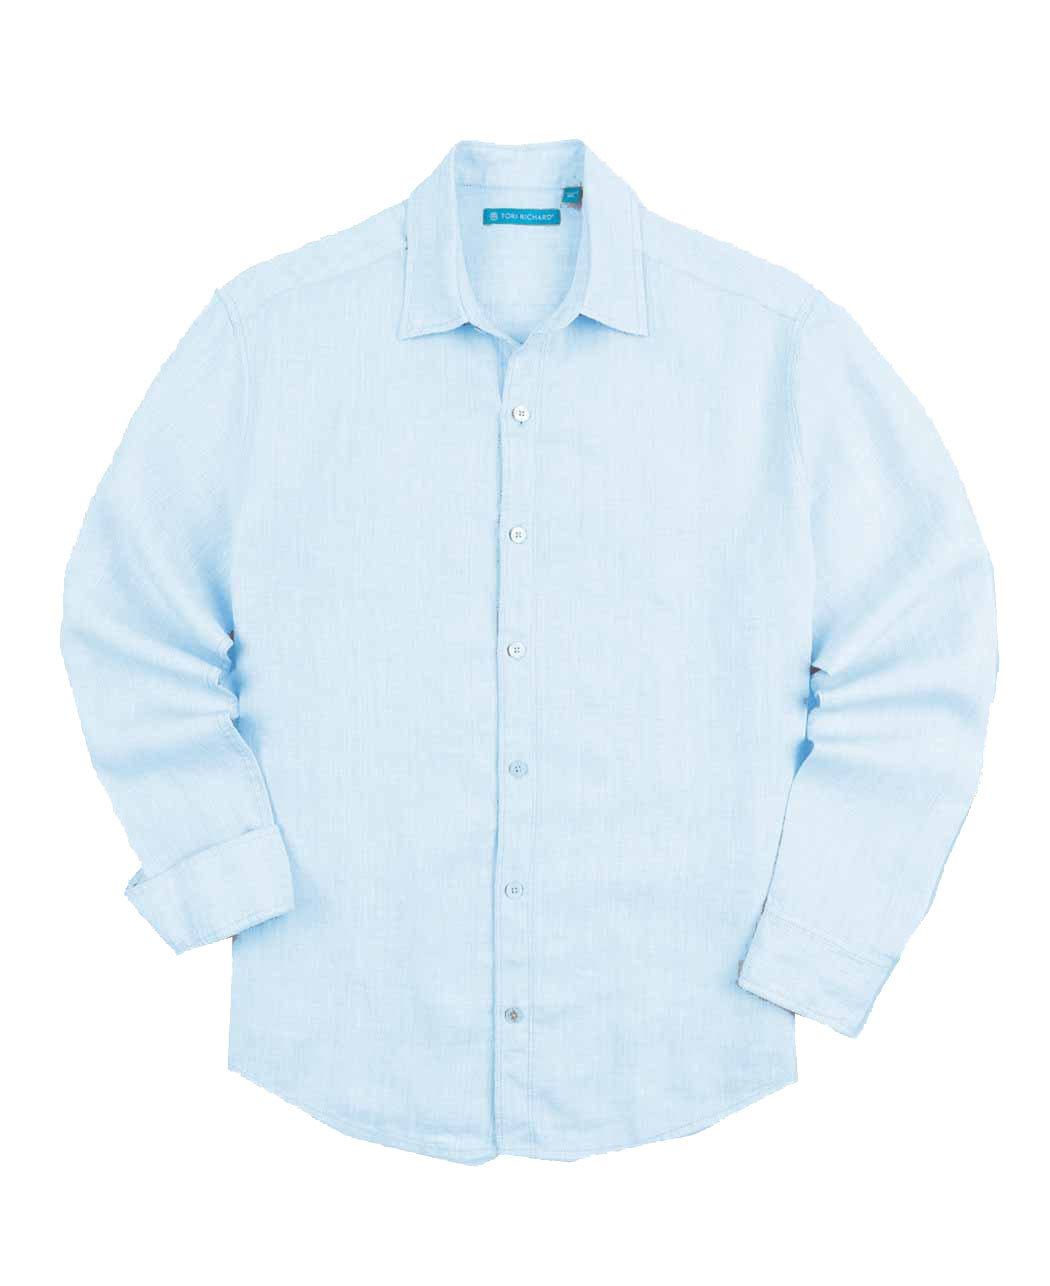 Tori Richard Men's Biscayne Long-Sleeve Relaxed-Fit Shirt (Blue, Small)